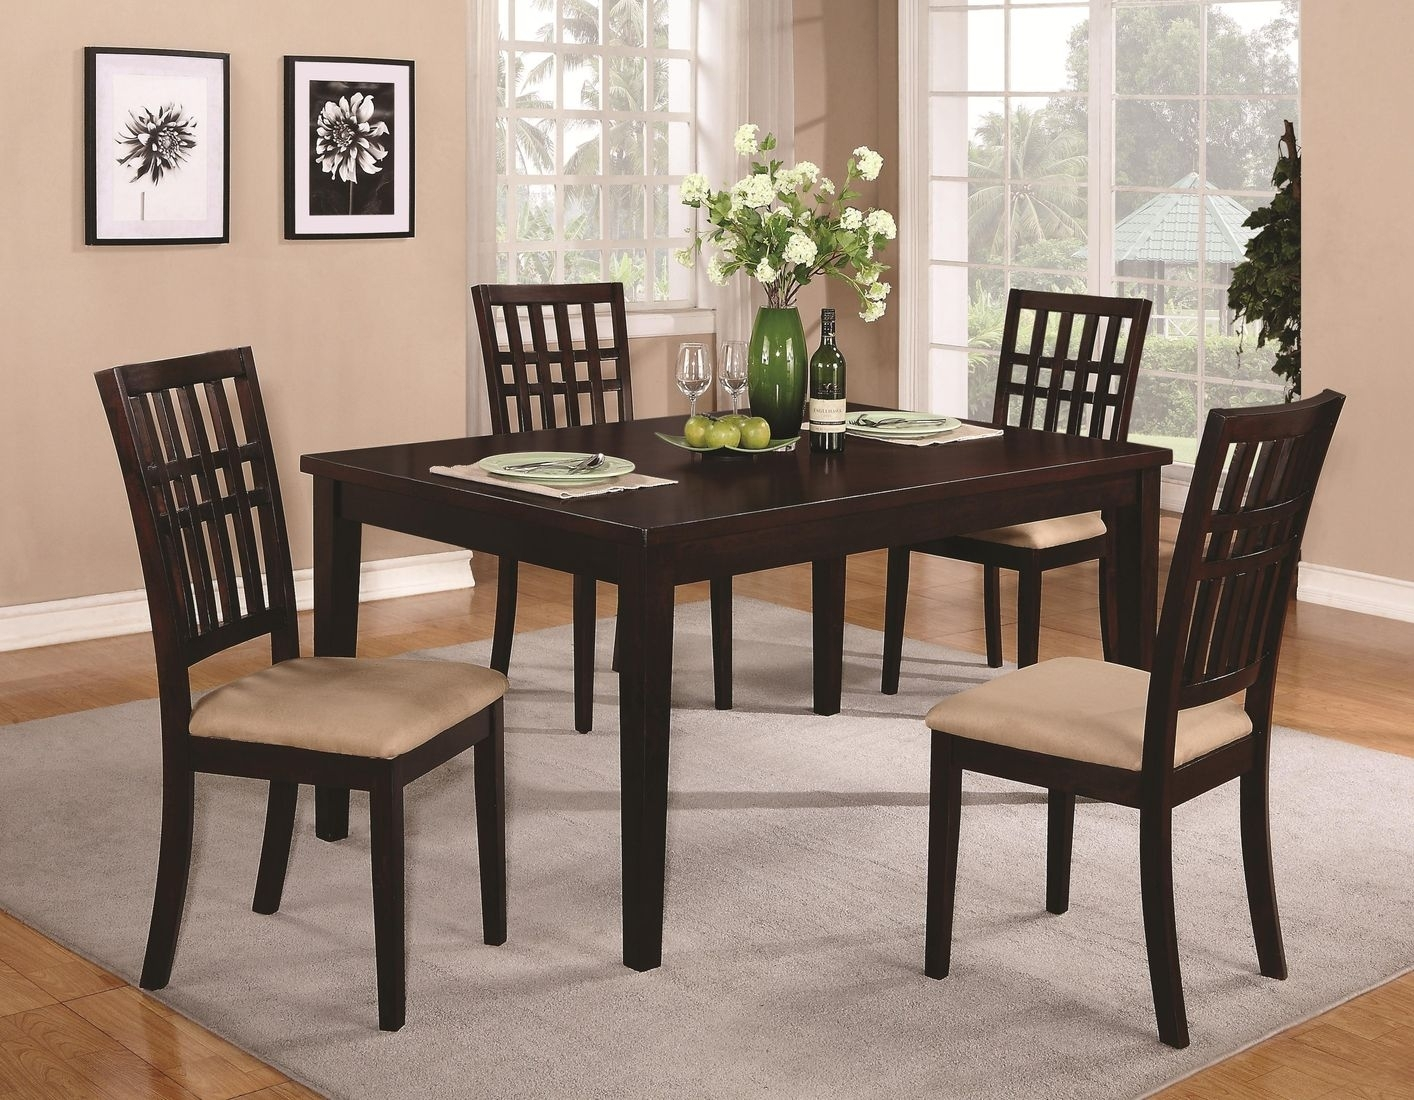 Brandt Dark Cherry Wood Dining Table Steal A Sofa Furniture And Also Inside Sofa Chairs With Dining Table (Image 1 of 10)